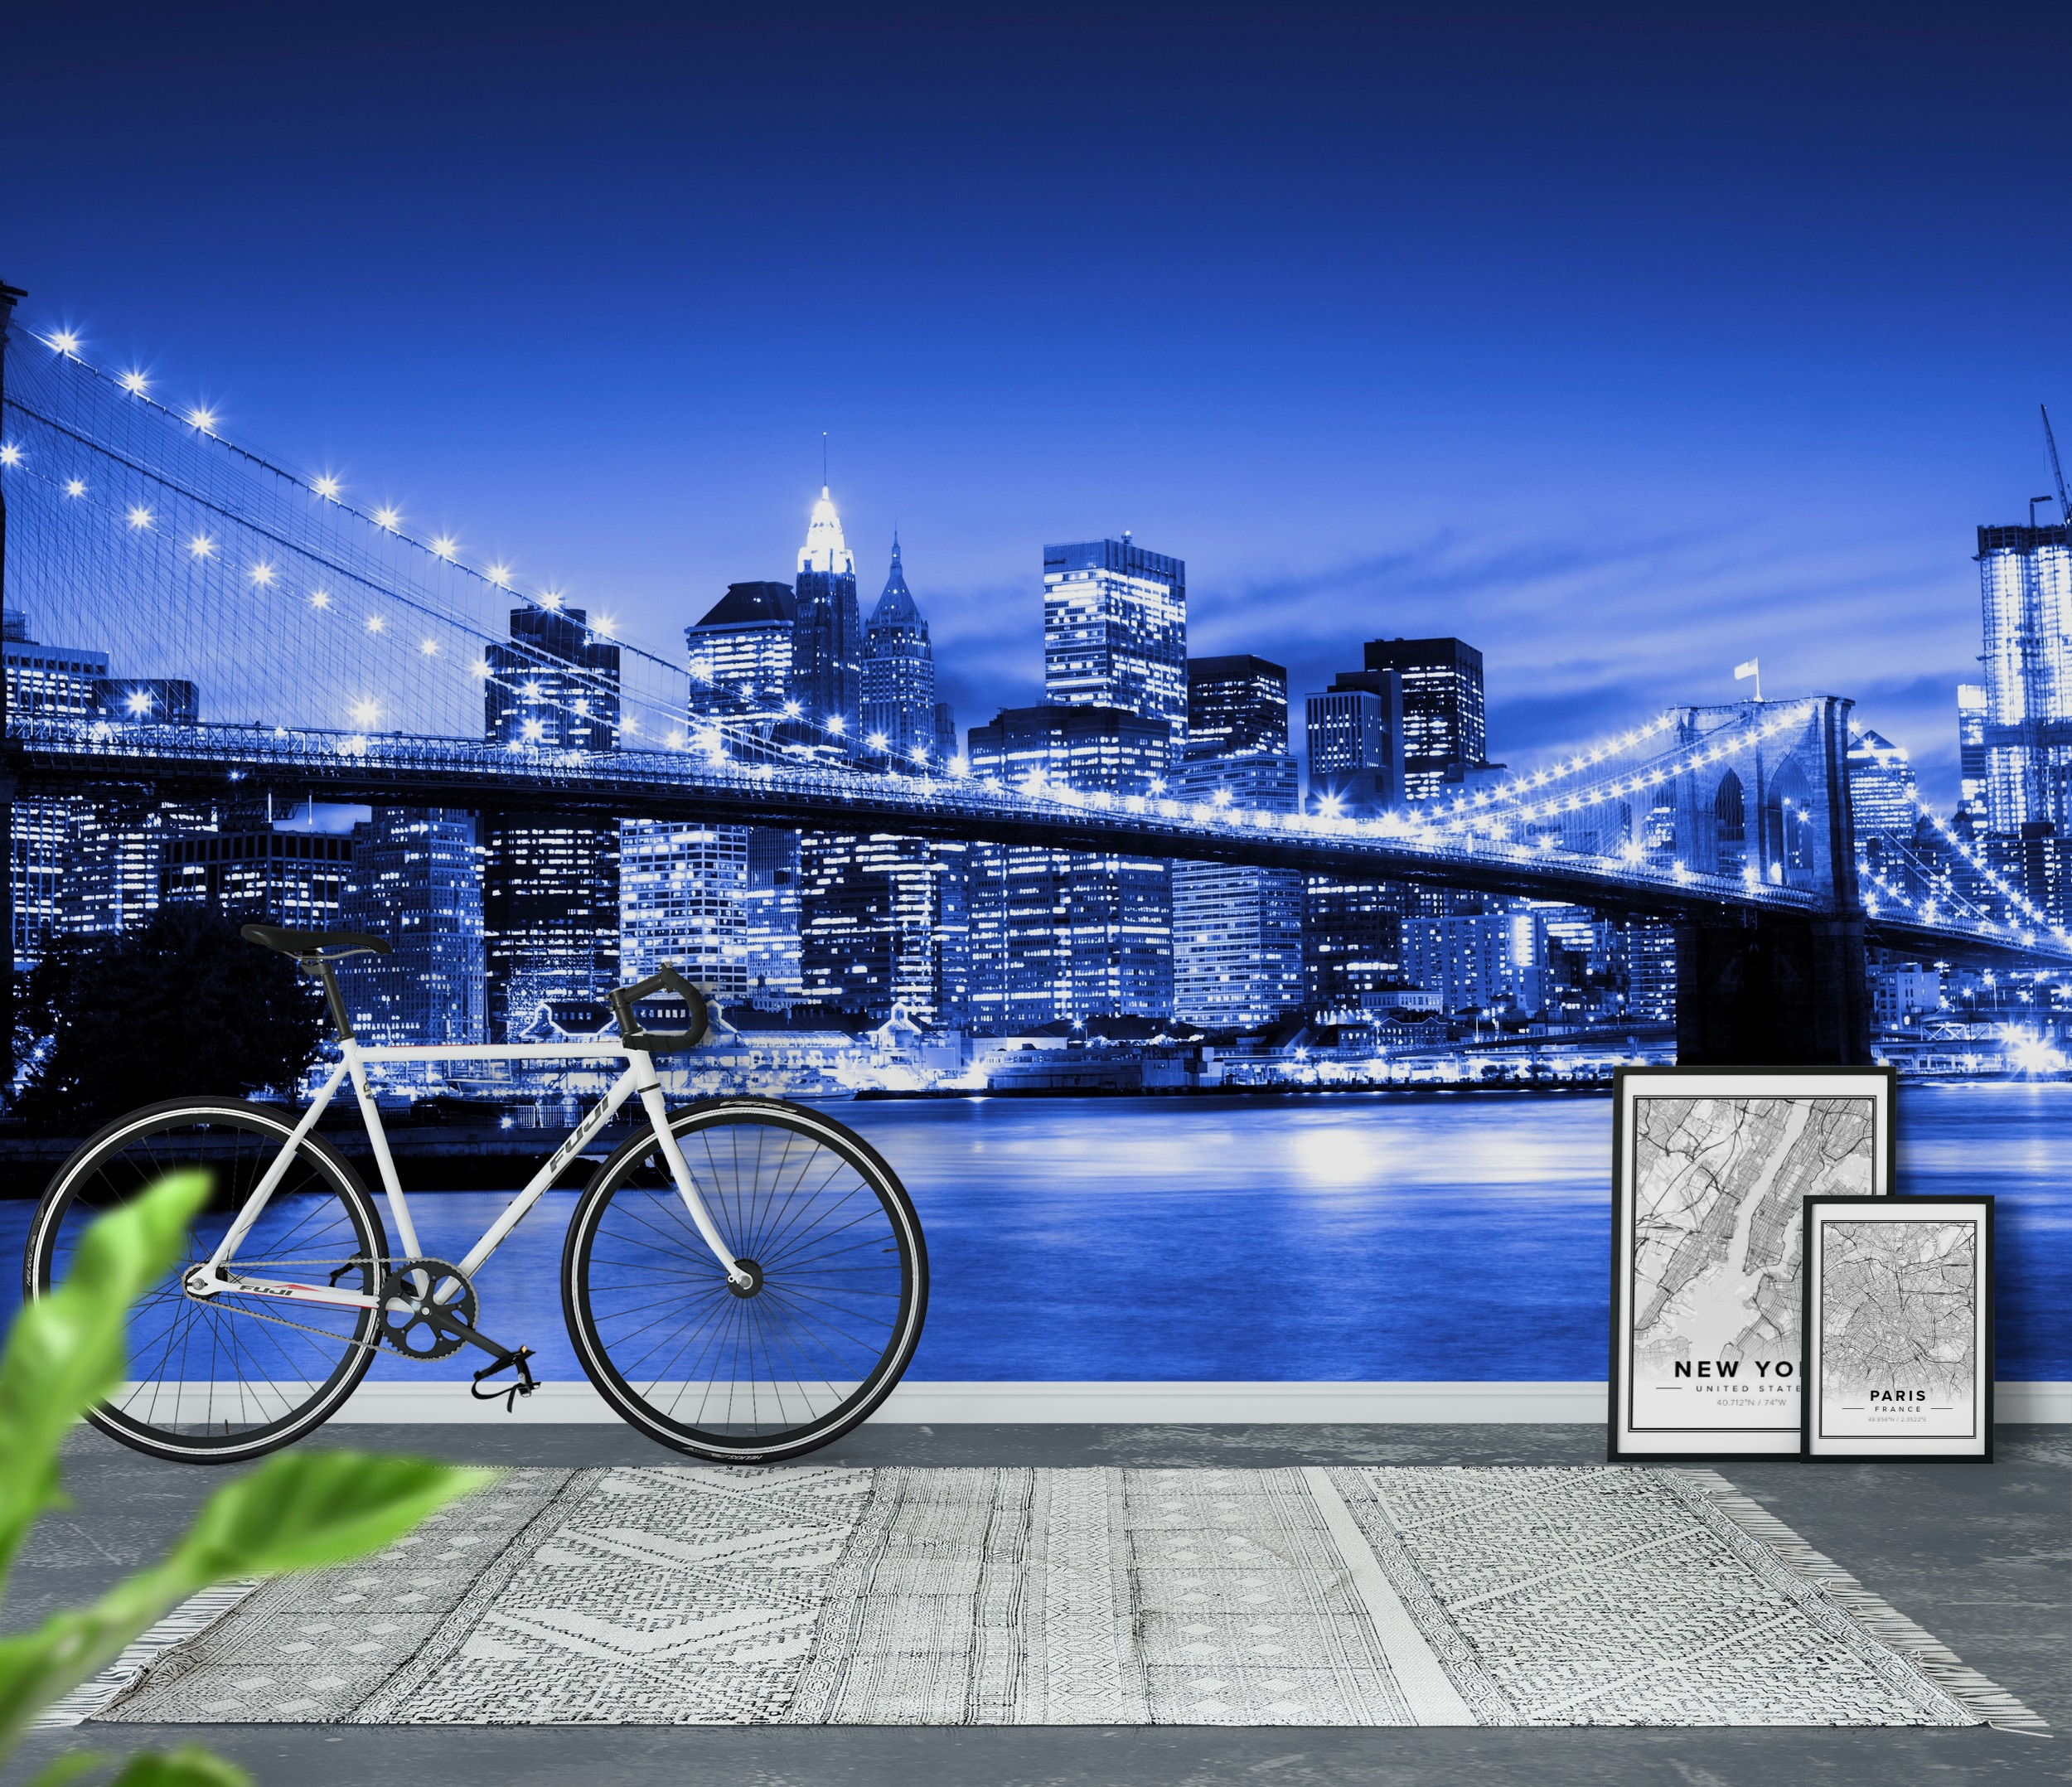 Wall mural brooklyn bridge photo wallpaper new york for Brooklyn bridge mural wallpaper